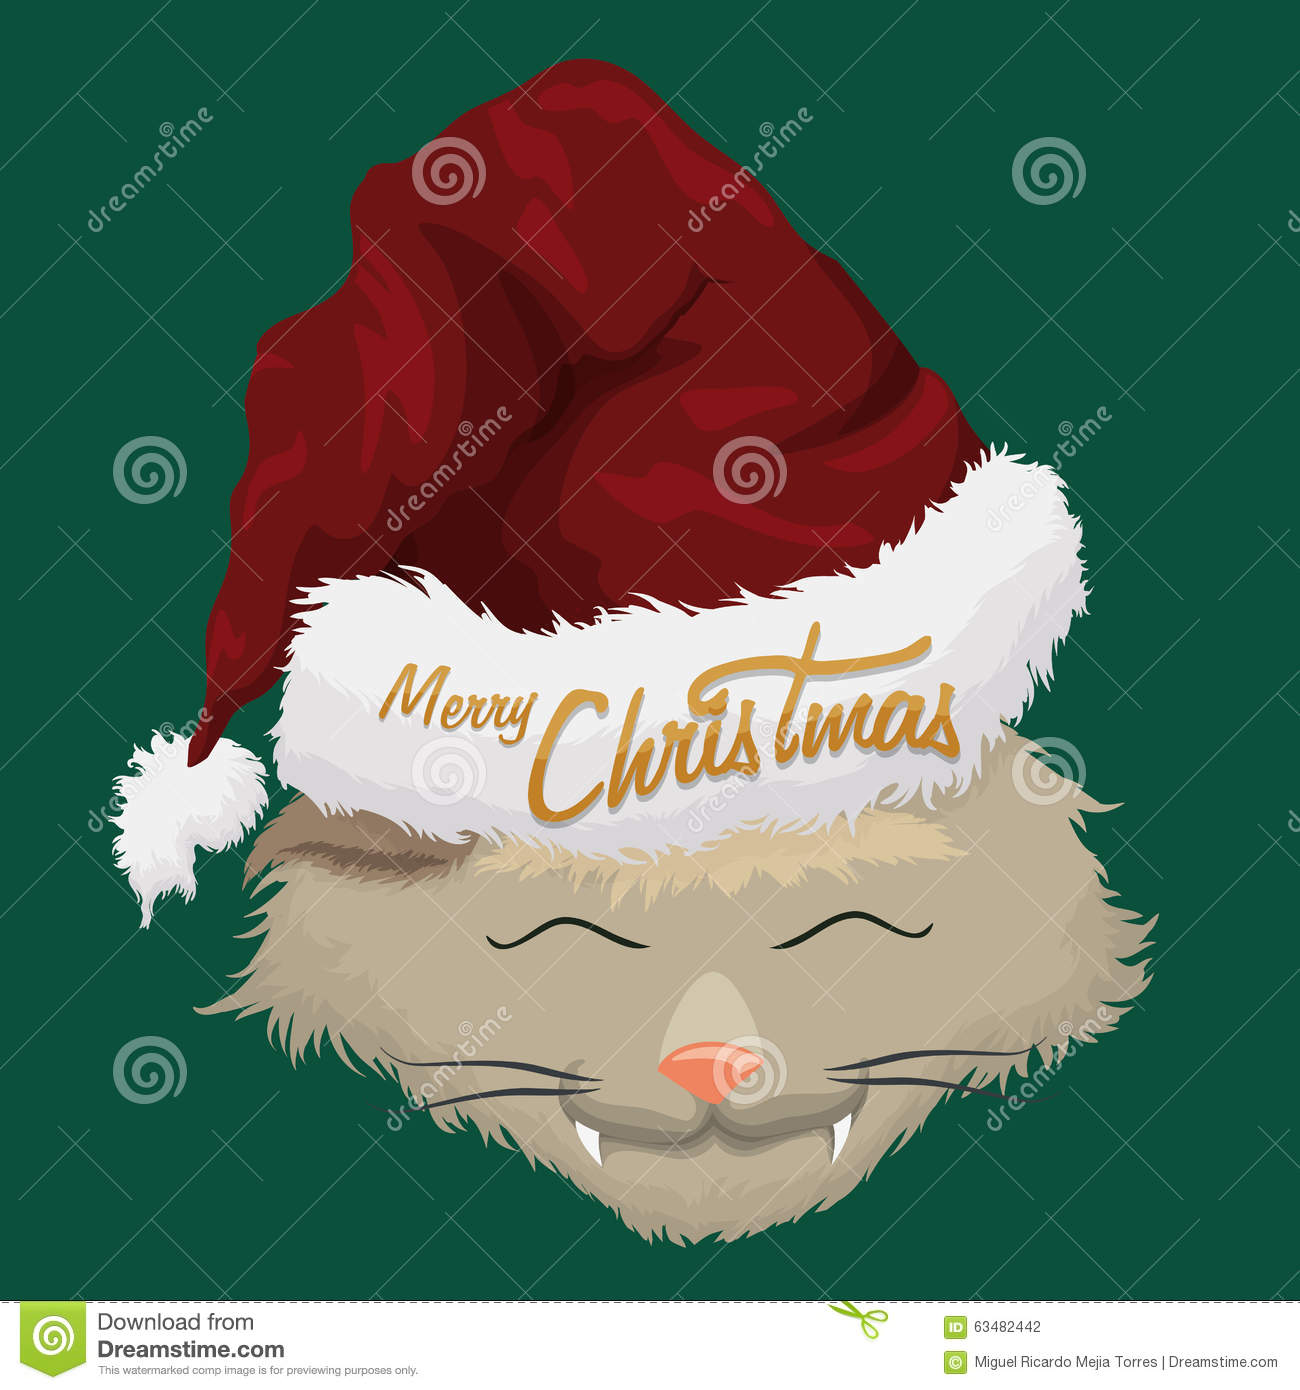 download christmas furry cat with santas hat vector illustration stock vector illustration of traditional - Christmas Furry